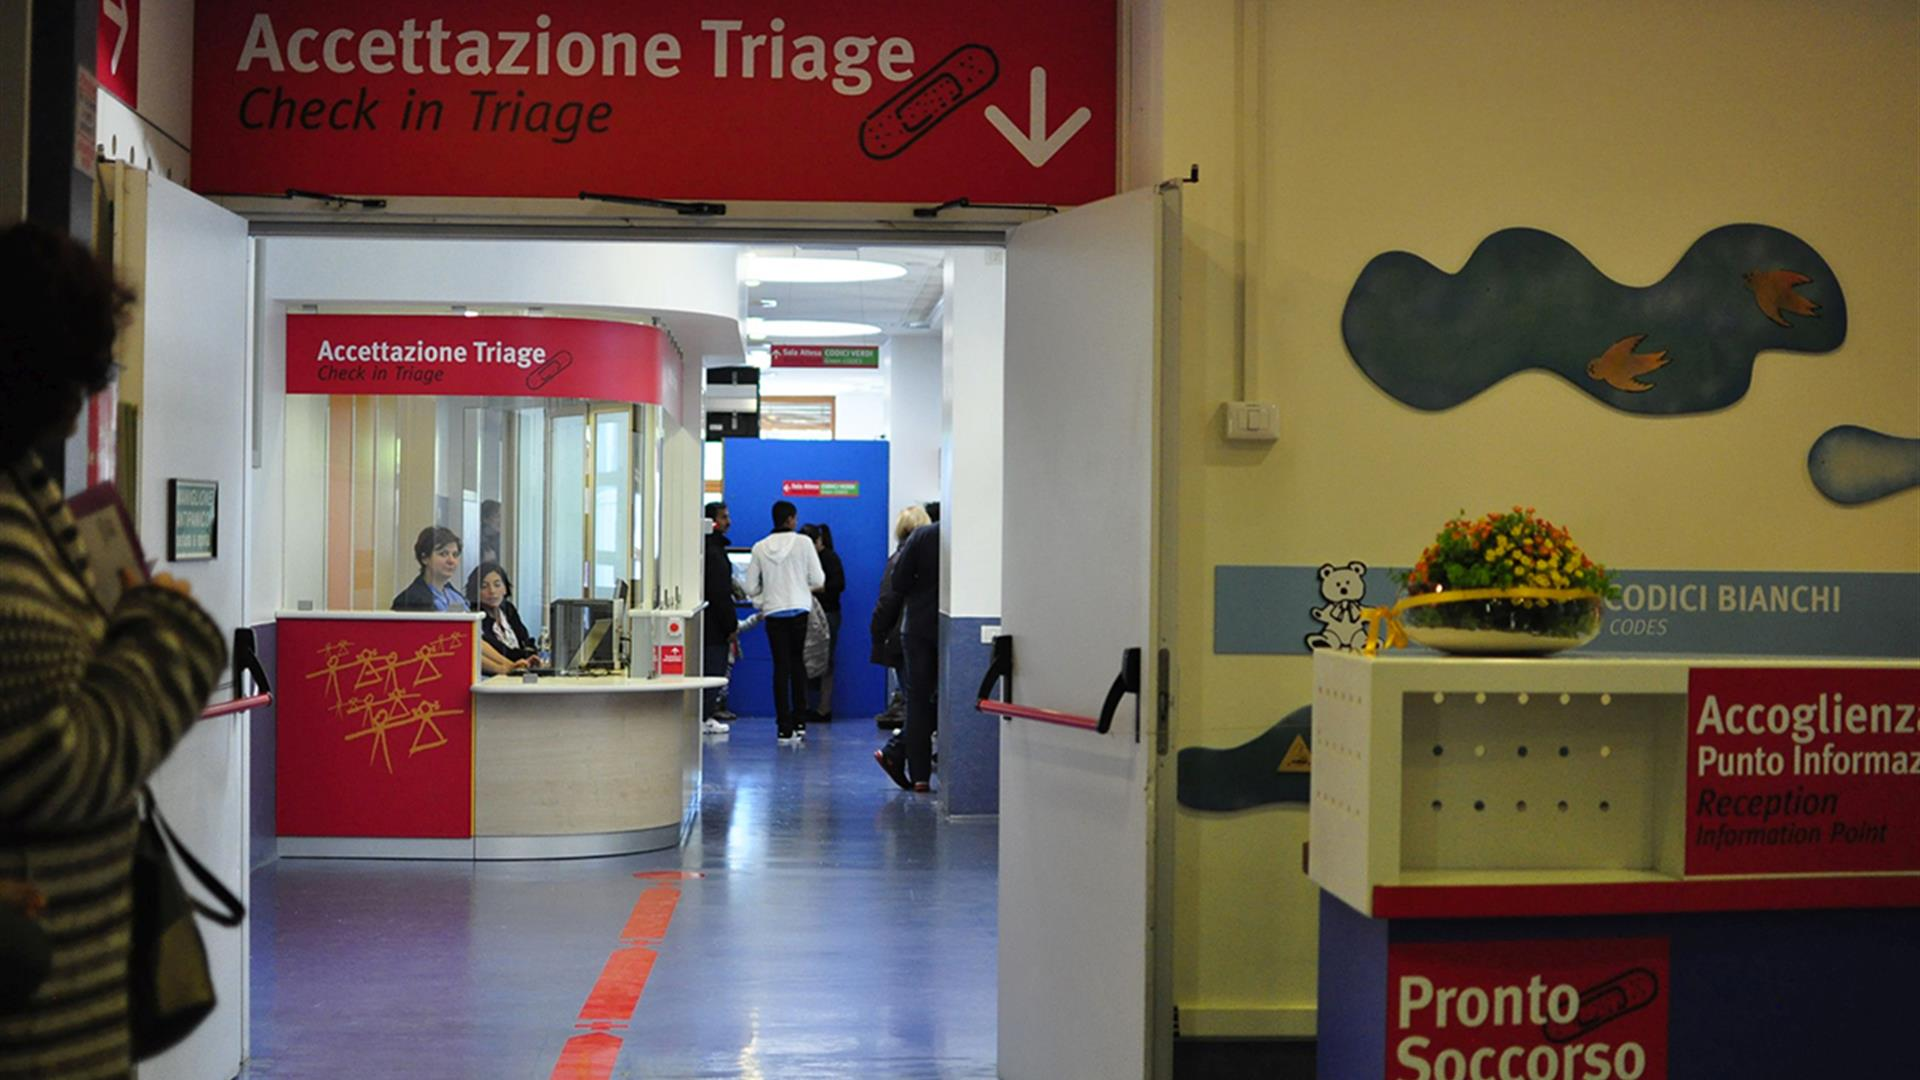 Pronto Soccorso Triage